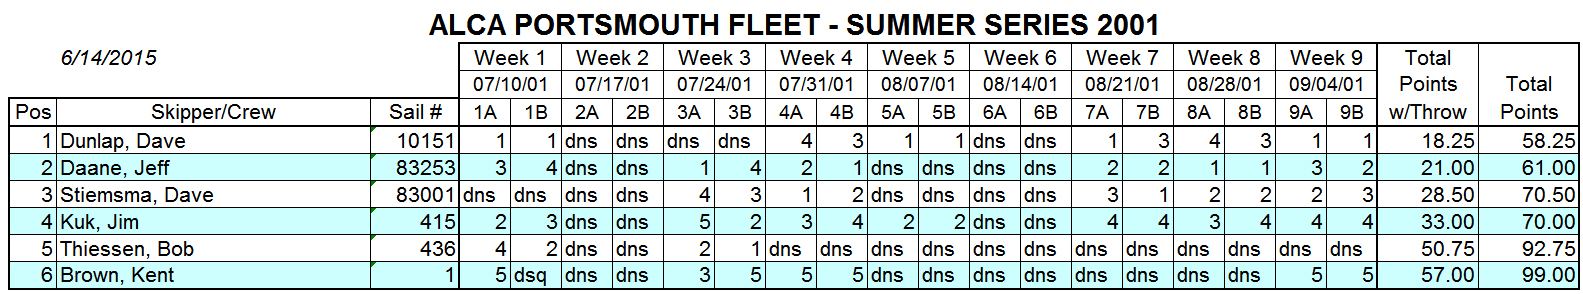 2001 Summer Portsmouth Fleet Results